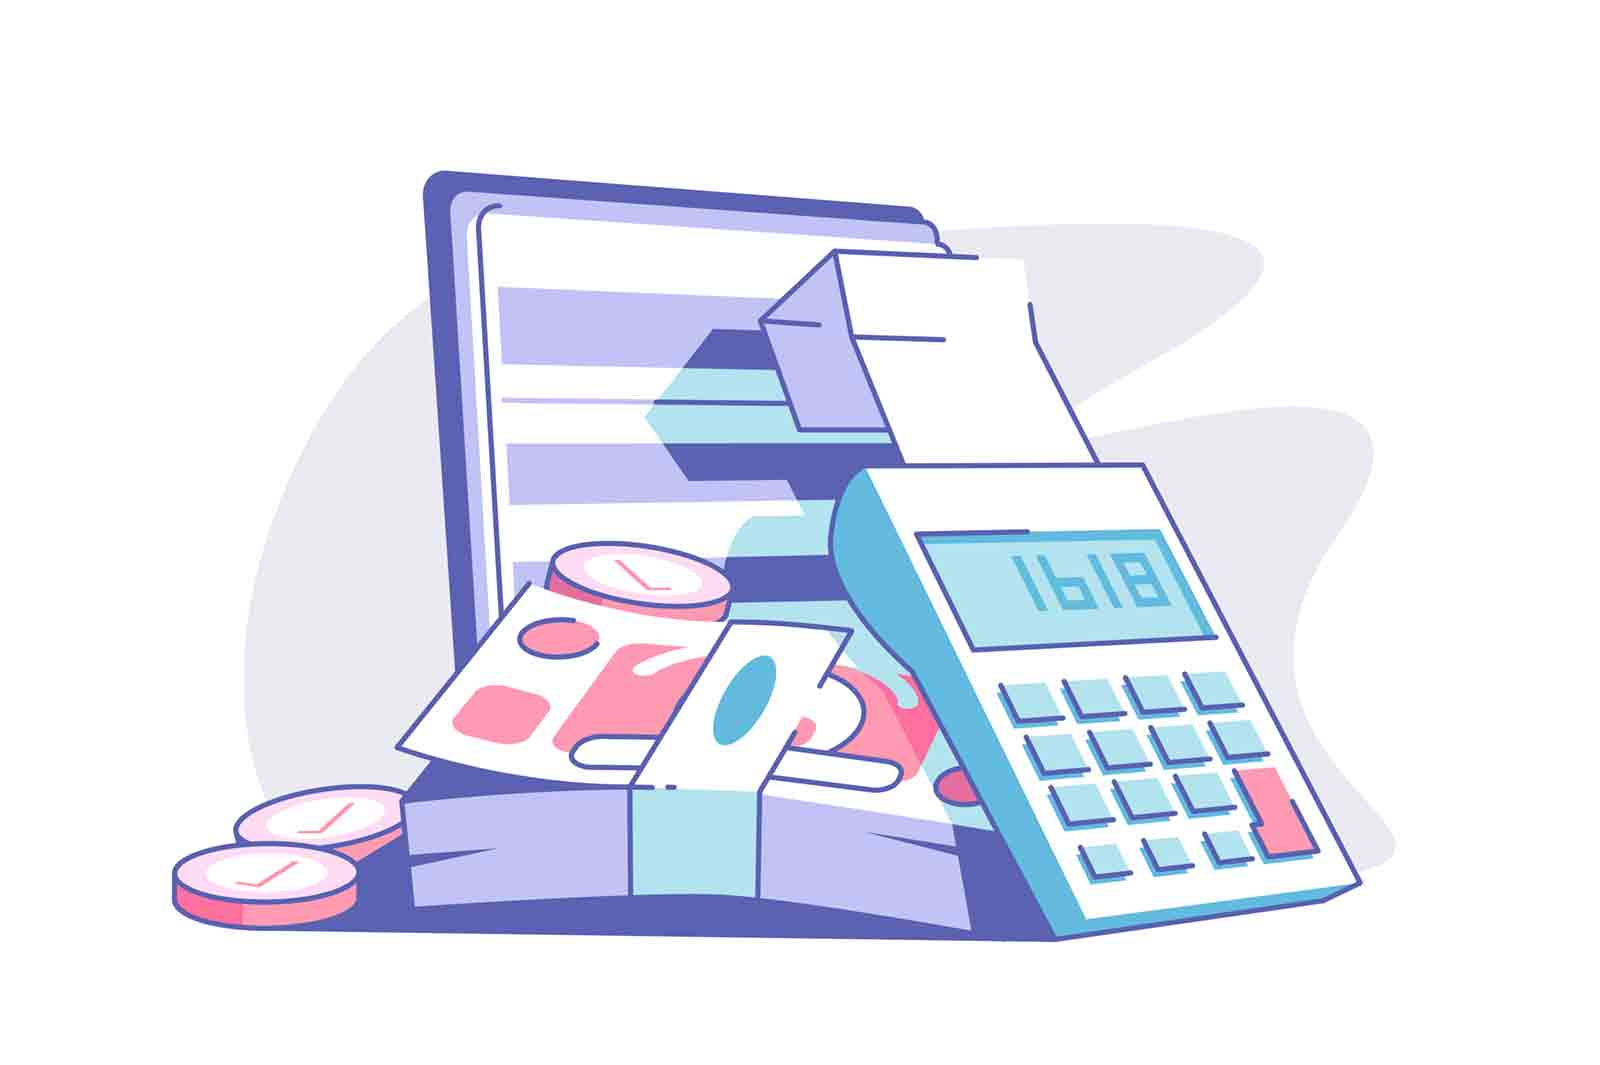 Calculator and banknotes vector illustration. Cash money and coins. Banking and financial analysis. Planning and strategy. Accounting and economy.